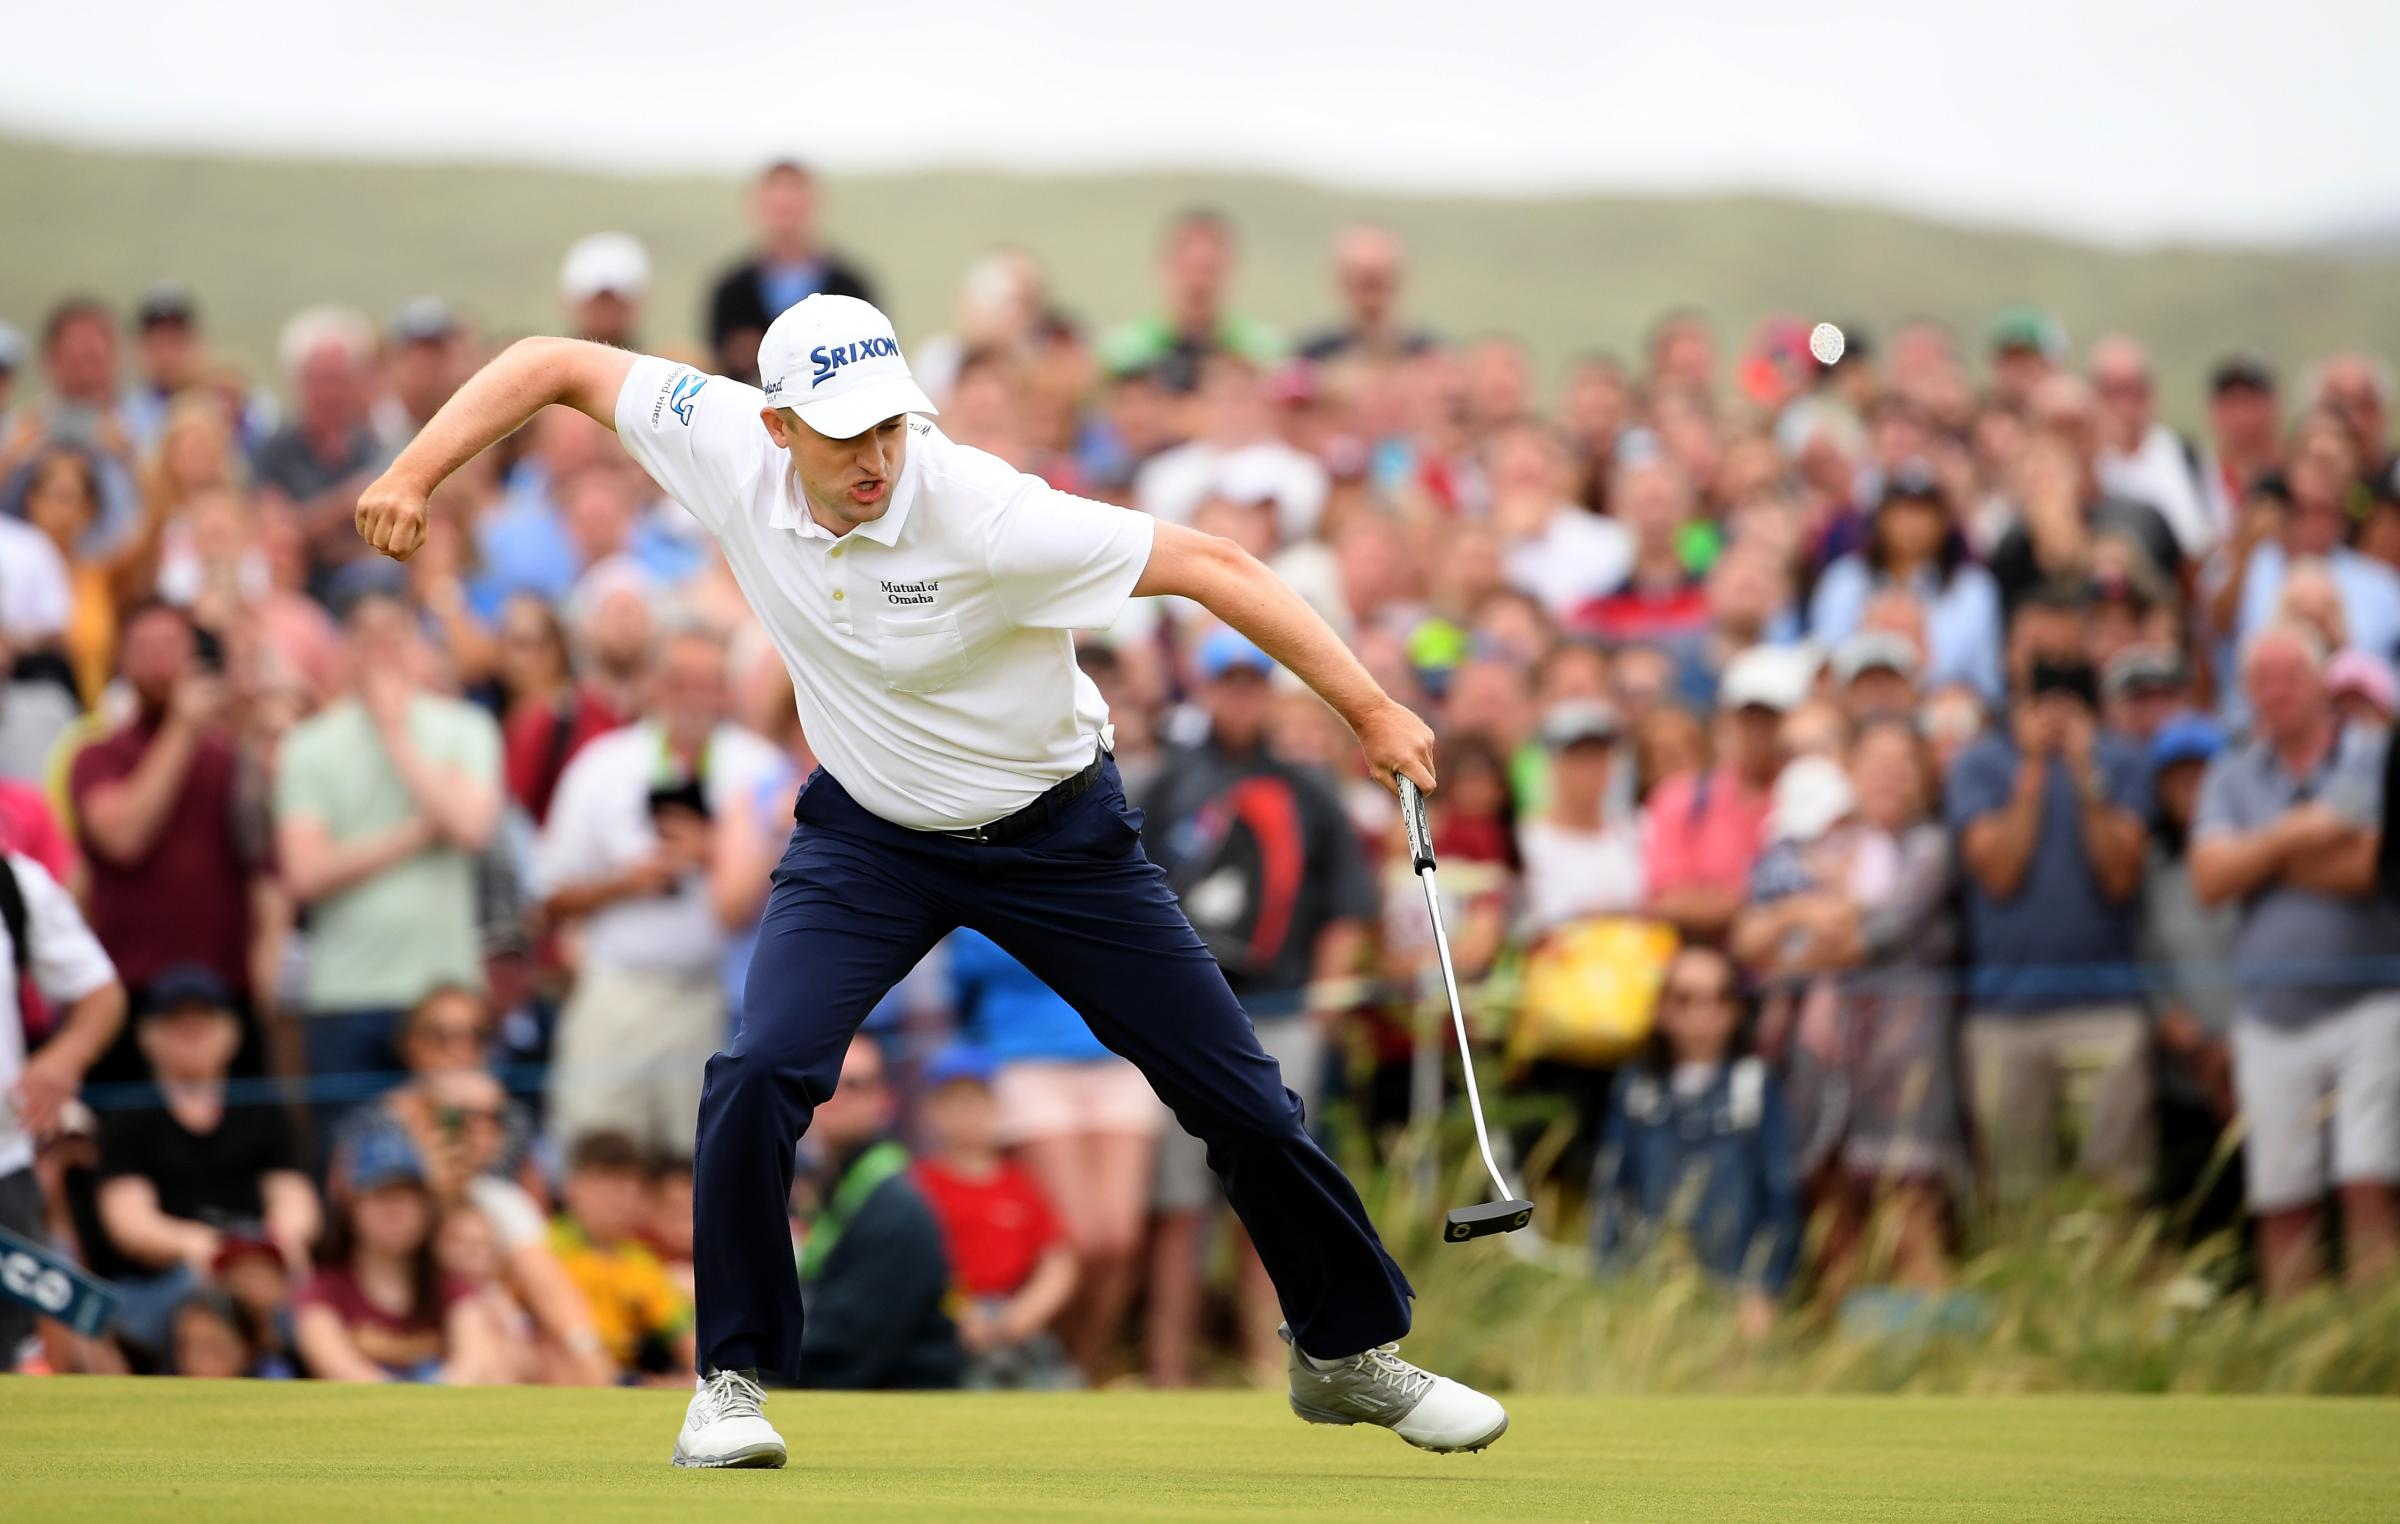 Get in there: Russell Knox shows his delight at winning the Irish Open (Picture: Getty)